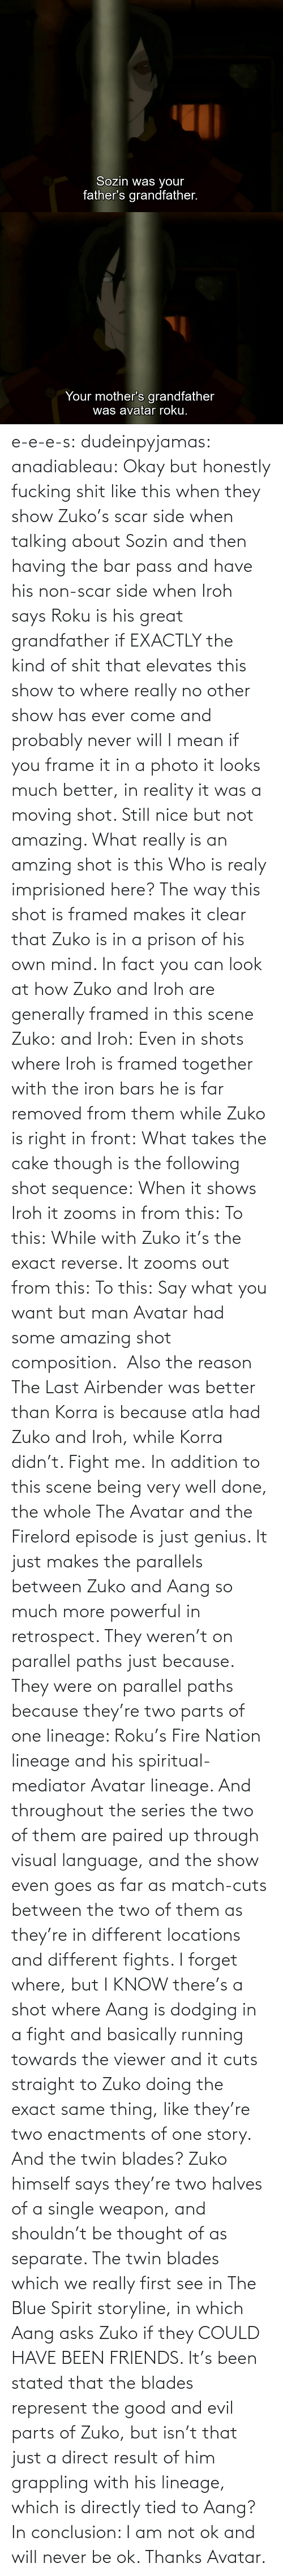 conclusion: e-e-e-s: dudeinpyjamas:   anadiableau: Okay but honestly fucking shit like this when they show Zuko's scar side when talking about Sozin and then having the bar pass and have his non-scar side when Iroh says Roku is his great grandfather if EXACTLY the kind of shit that elevates this show to where really no other show has ever come and probably never will I mean if you frame it in a photo it looks much better, in reality it was a moving shot. Still nice but not amazing. What really is an amzing shot is this Who is realy imprisioned here? The way this shot is framed makes it clear that Zuko is in a prison of his own mind. In fact you can look at how Zuko and Iroh are generally framed in this scene Zuko: and Iroh: Even in shots where Iroh is framed together with the iron bars he is far removed from them while Zuko is right in front:  What takes the cake though is the following shot sequence: When it shows Iroh it zooms in from this: To this: While with Zuko it's the exact reverse. It zooms out from this: To this: Say what you want but man Avatar had some amazing shot composition.   Also the reason The Last Airbender was better than Korra is because atla had Zuko and Iroh, while Korra didn't. Fight me.    In addition to this scene being very well done, the whole The Avatar and the Firelord episode is just genius.  It just makes the parallels between Zuko and Aang so much more powerful in retrospect.  They weren't on parallel paths just because.  They were on parallel paths because they're two parts of one lineage: Roku's Fire Nation lineage and his spiritual-mediator Avatar lineage.  And throughout the series the two of them are paired up through visual language, and the show even goes as far as match-cuts between the two of them as they're in different locations and different fights.  I forget where, but I KNOW there's a shot where Aang is dodging in a fight and basically running towards the viewer and it cuts straight to Zuko doing the exact same thing, like they're two enactments of one story.   And the twin blades?  Zuko himself says they're two halves of a single weapon, and shouldn't be thought of as separate.  The twin blades which we really first see in The Blue Spirit storyline, in which Aang asks Zuko if they COULD HAVE BEEN FRIENDS.  It's been stated that the blades represent the good and evil parts of Zuko, but isn't that just a direct result of him grappling with his lineage, which is directly tied to Aang? In conclusion: I am not ok and will never be ok.  Thanks Avatar.